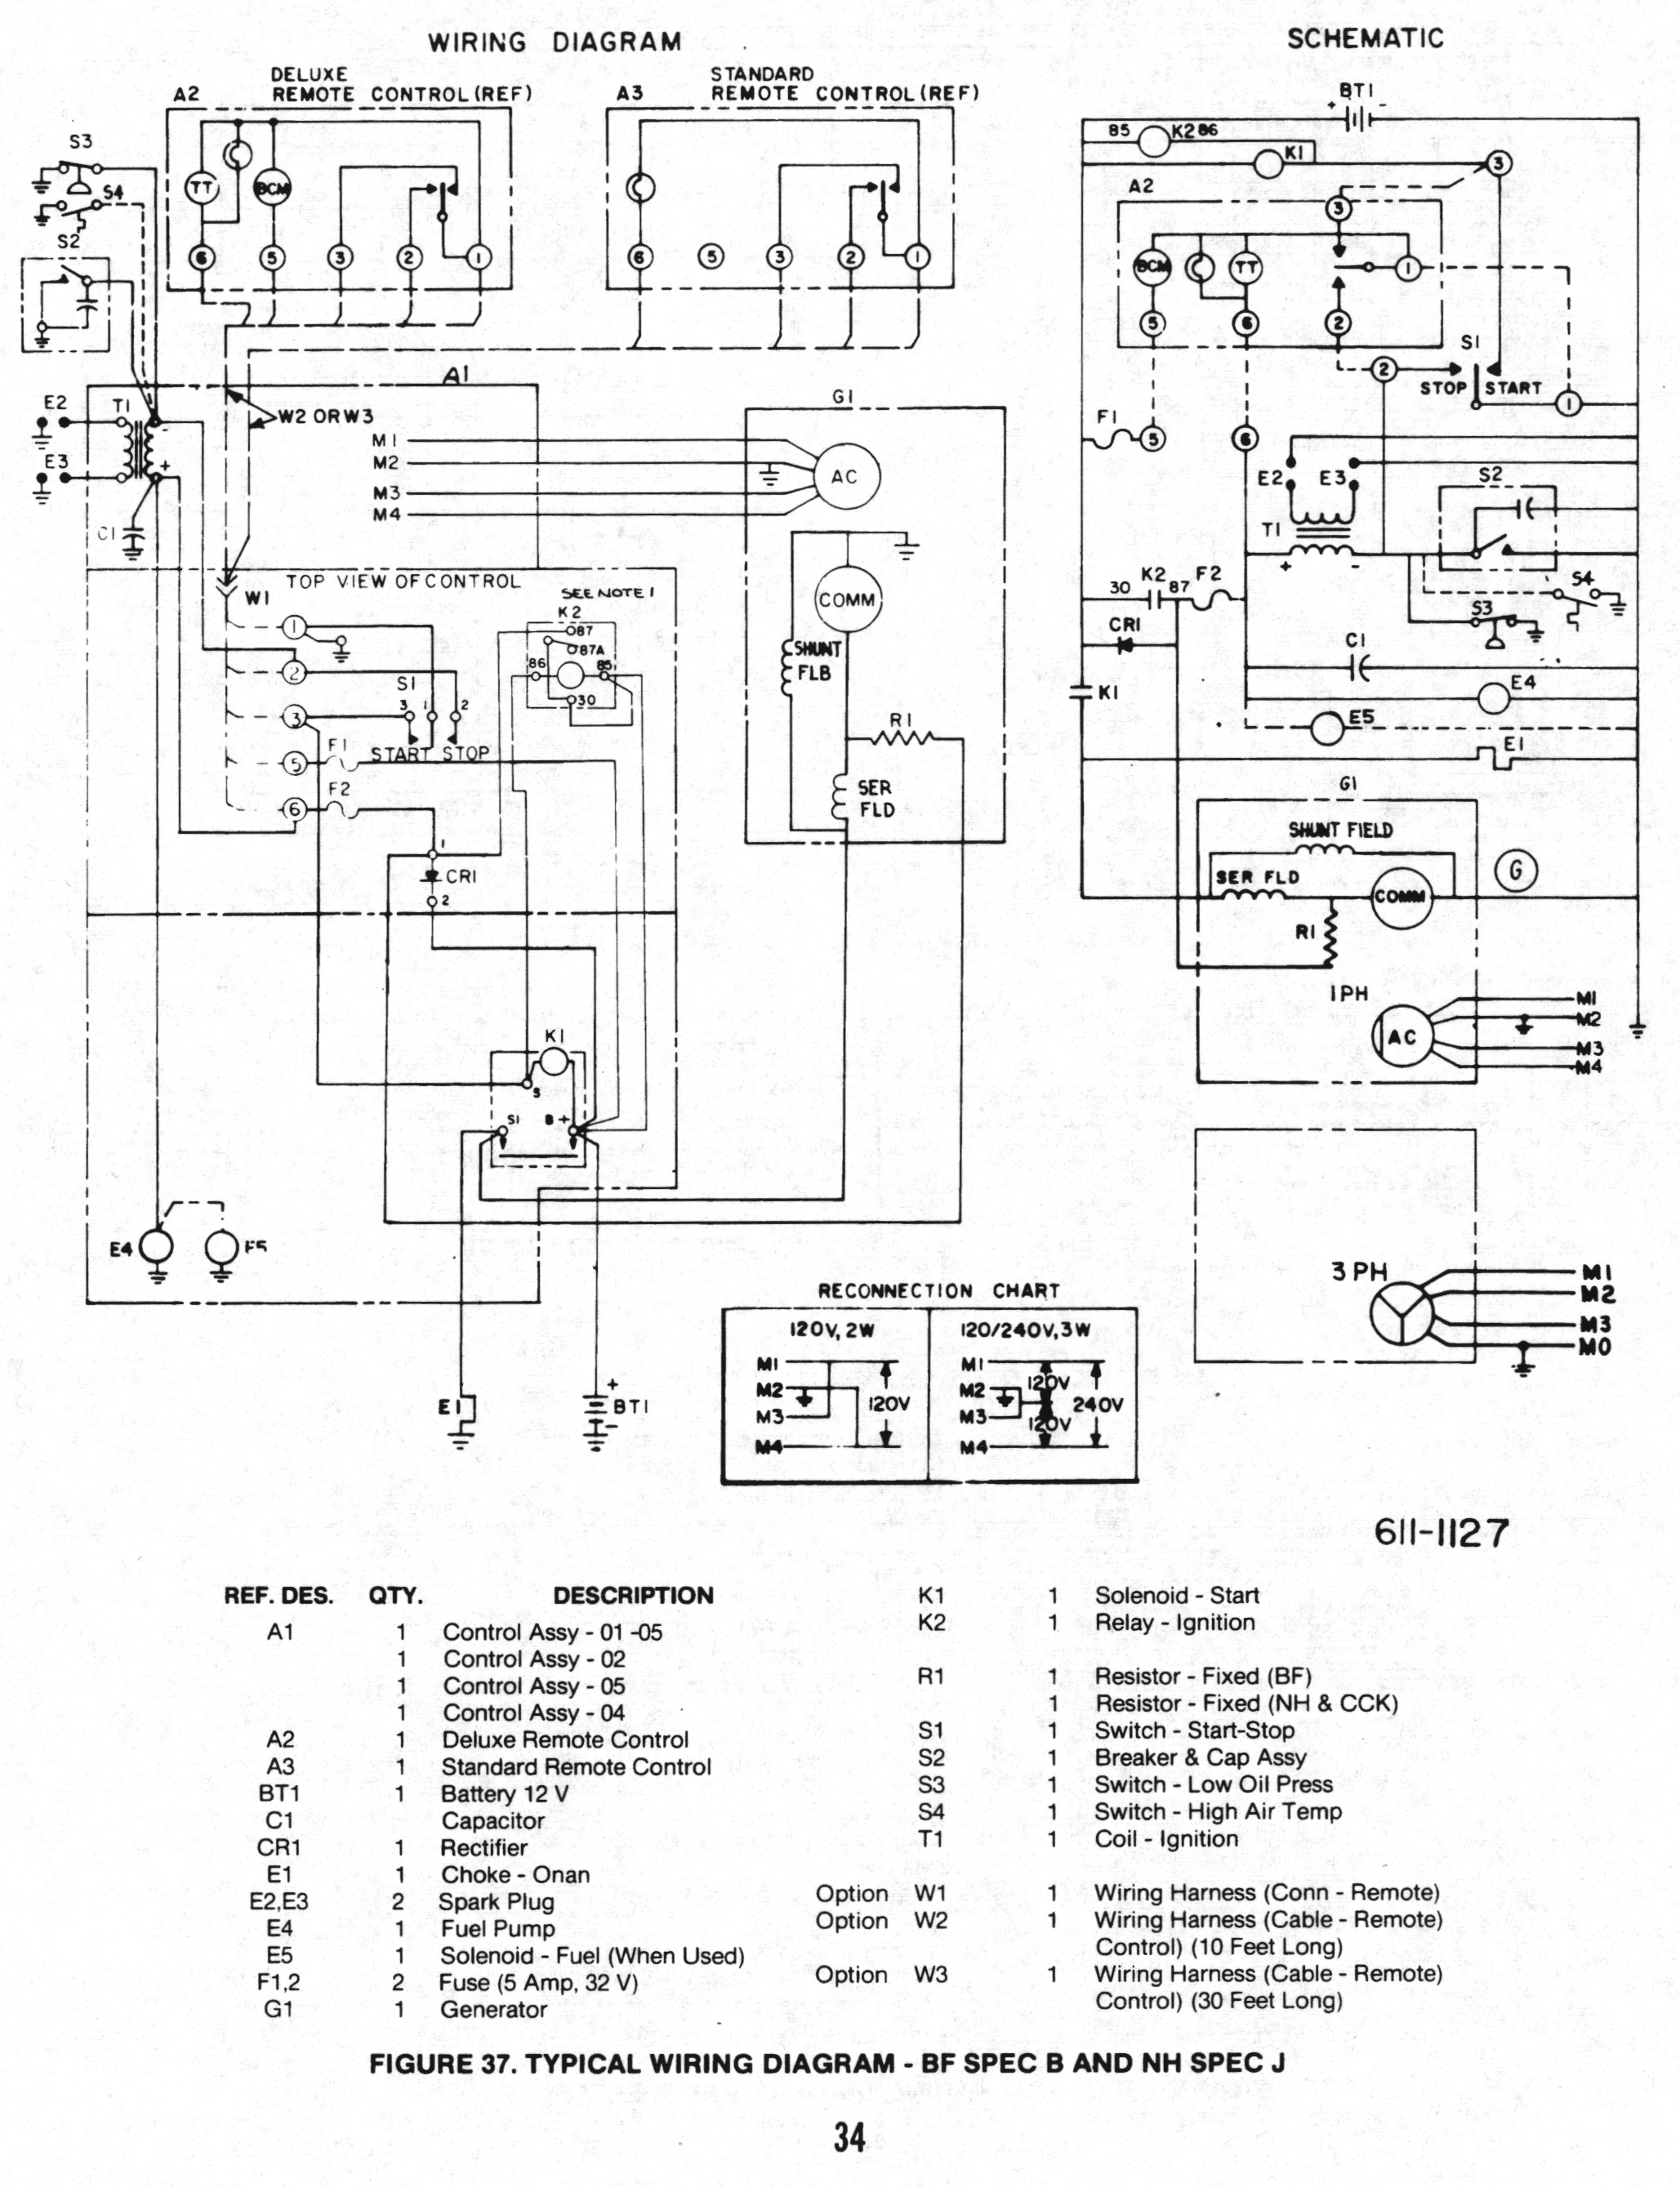 onan service manual for bf bfa bga nh 900 0337 page 34